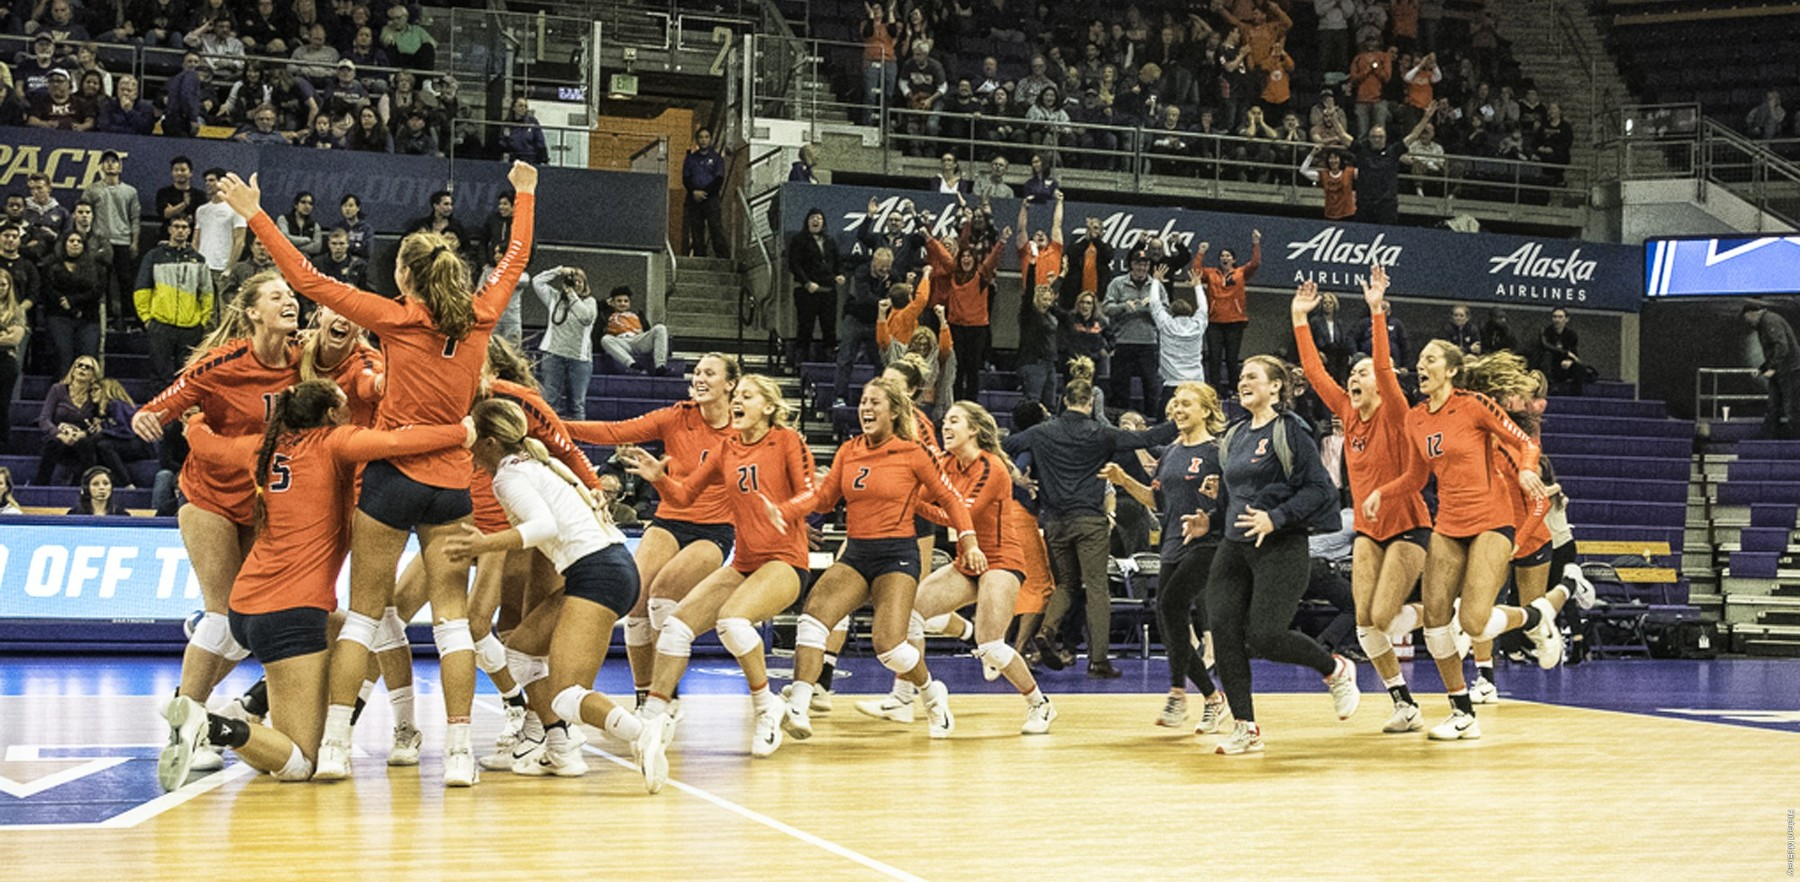 volleyball team members erupt in celebration